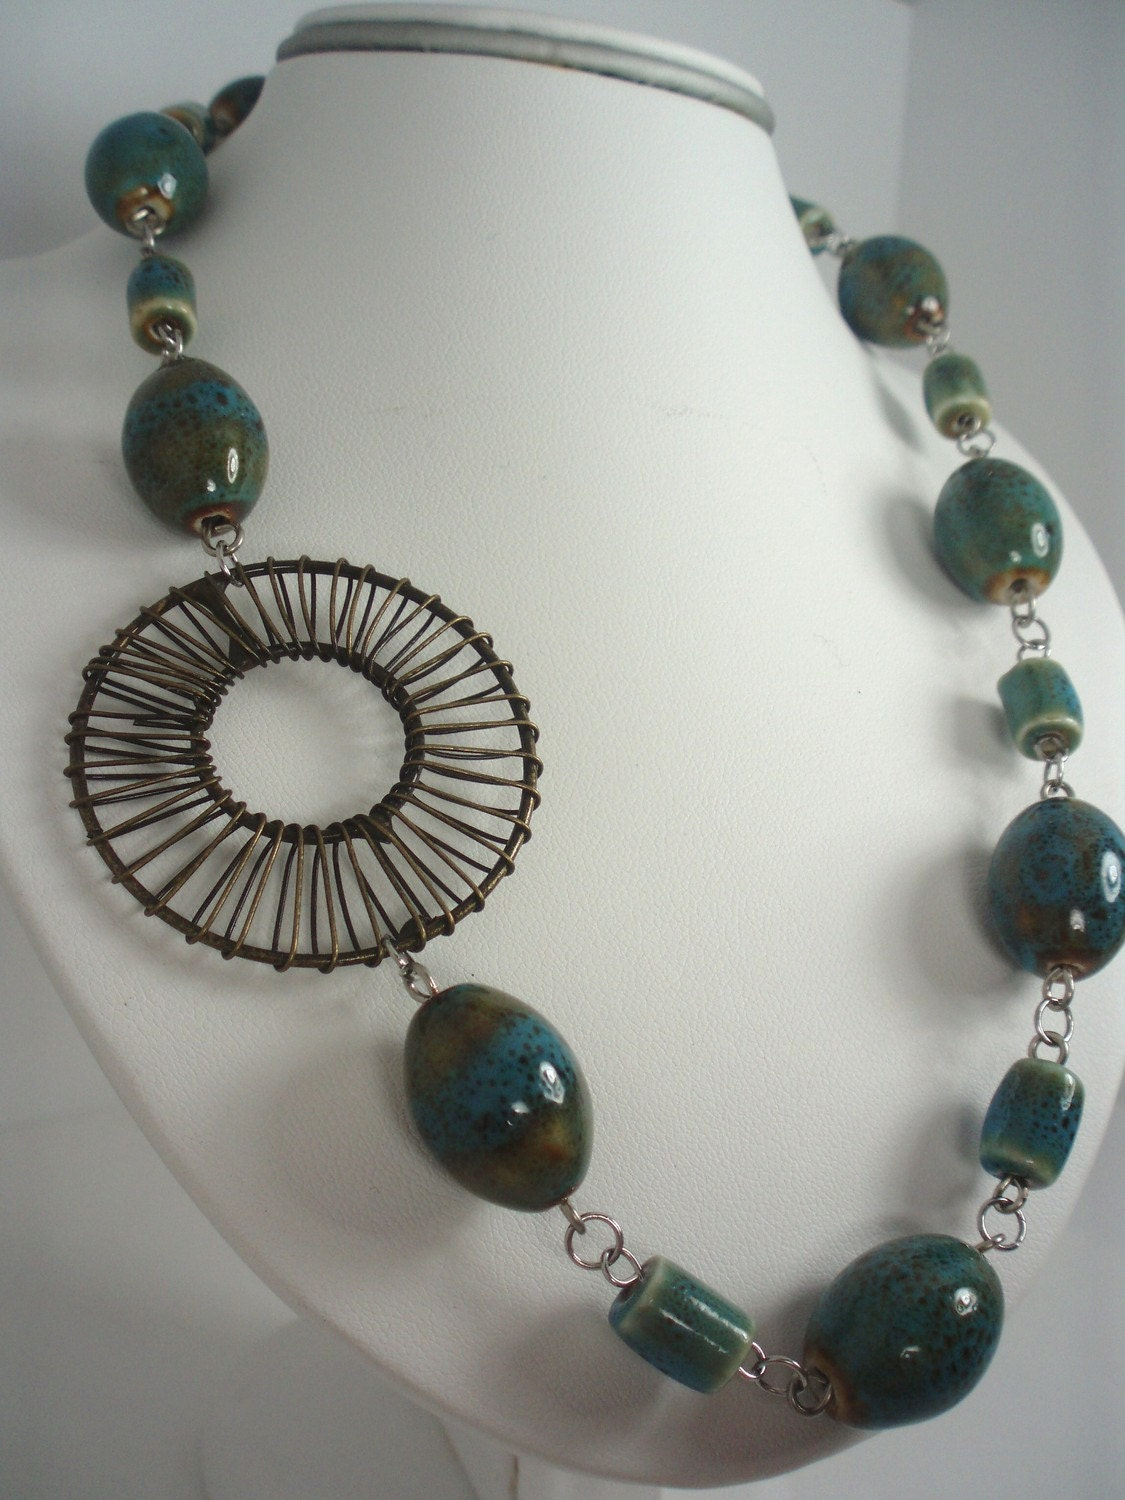 "Long Necklace 27"" in Green Porcelain Beads and Bronzed Focal Round Metal Bead"